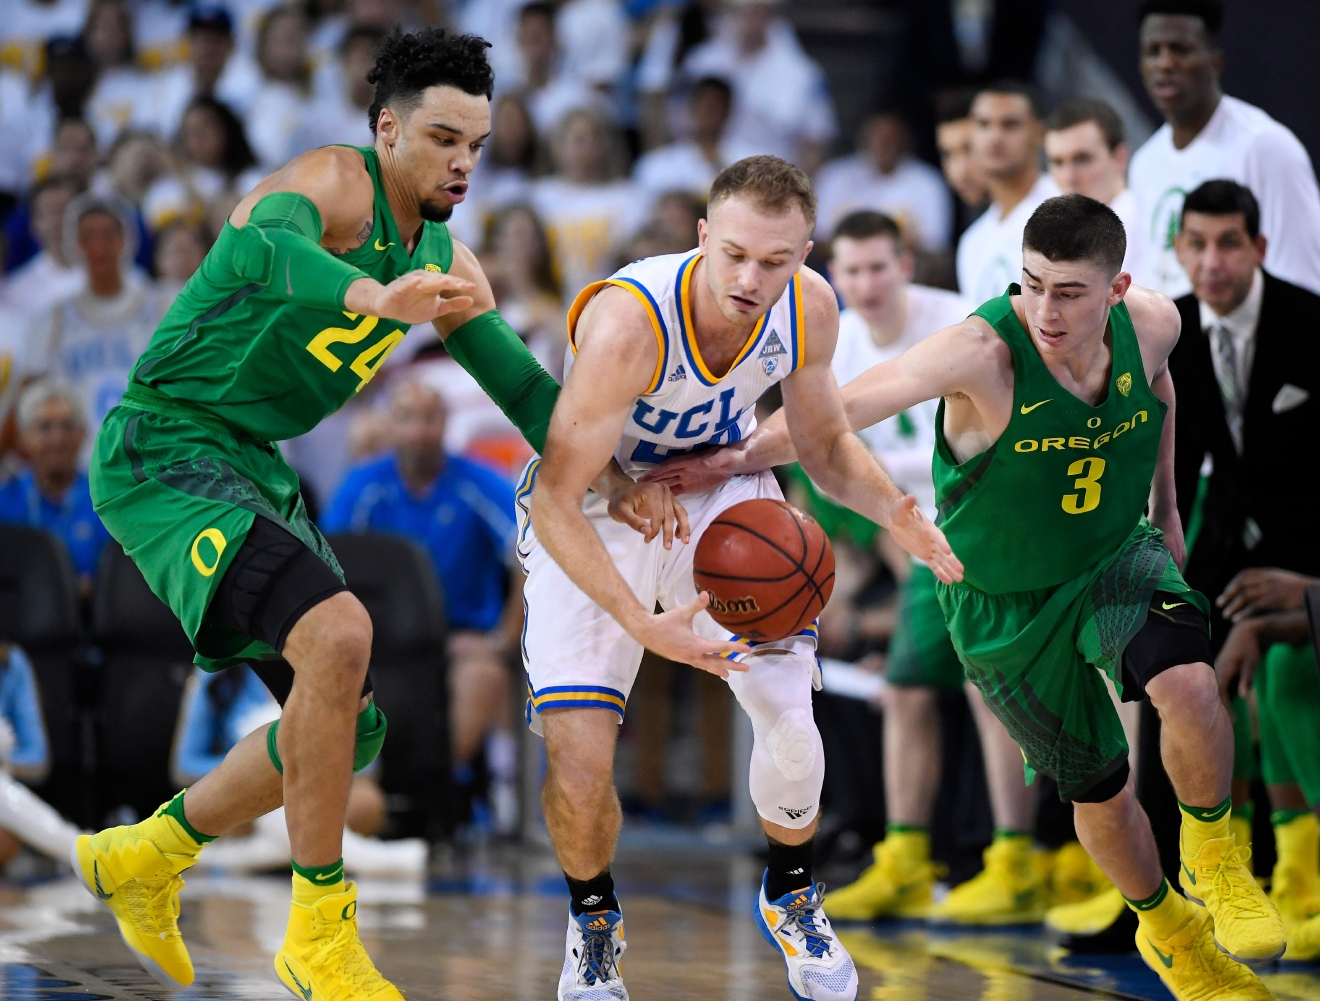 UCLA guard Bryce Alford, center, reaches for a loose ball along with Oregon forward Dillon Brooks, left, and guard Payton Pritchard during the first half of an NCAA college basketball game, Thursday, Feb. 9, 2017, in Los Angeles. (AP Photo/Mark J. Terrill)